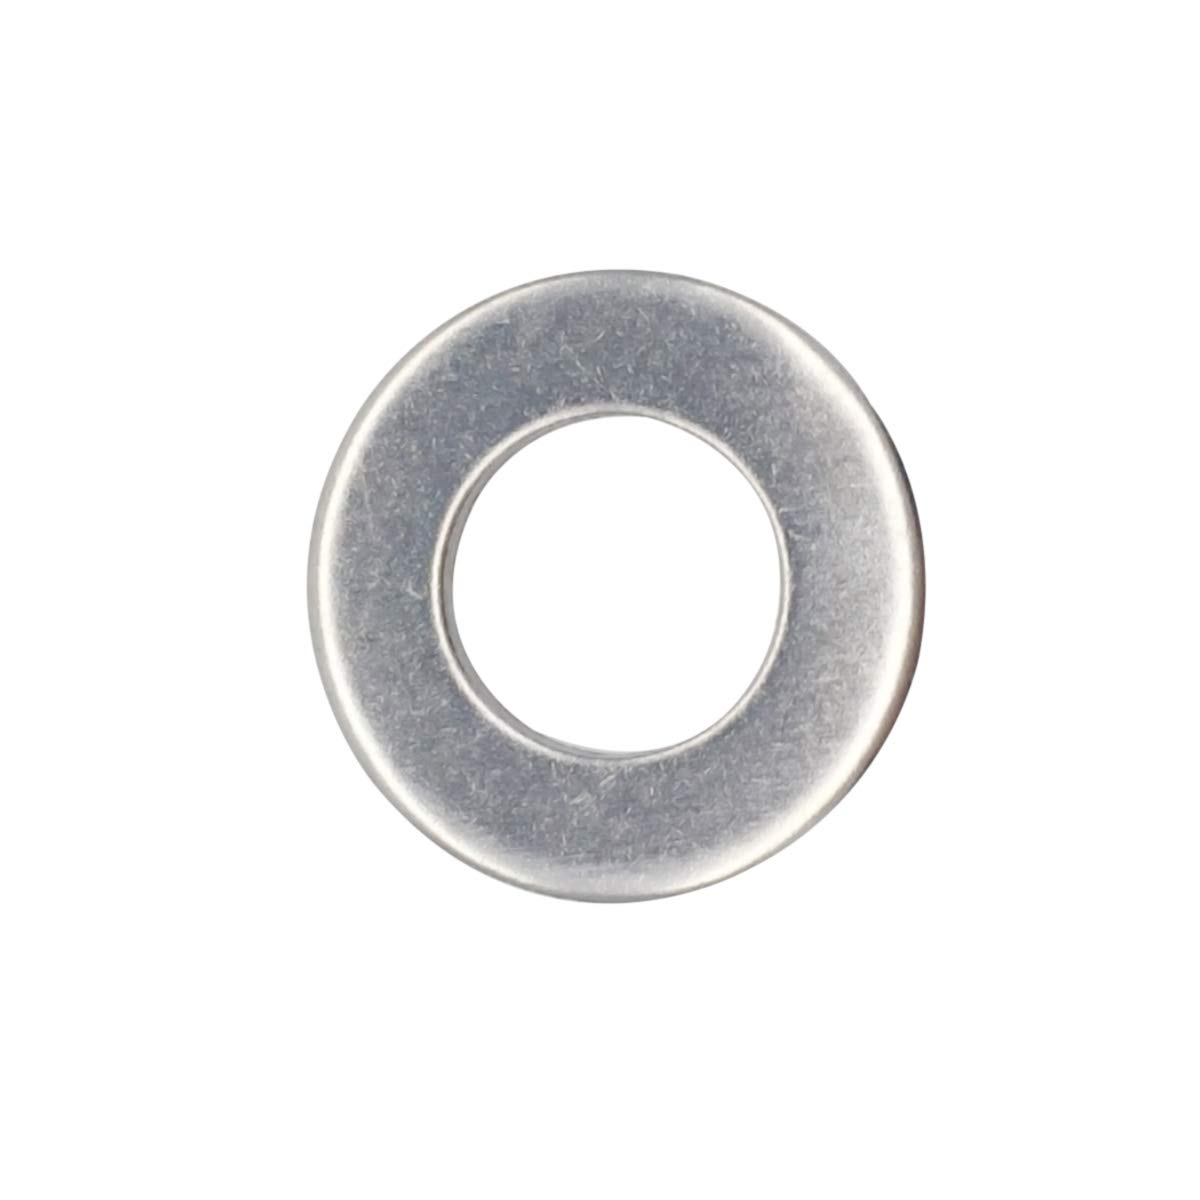 18-8 100pcs Stainless Steel M6 304 M6 Stainless Flat Finish Washer 0.47 OD